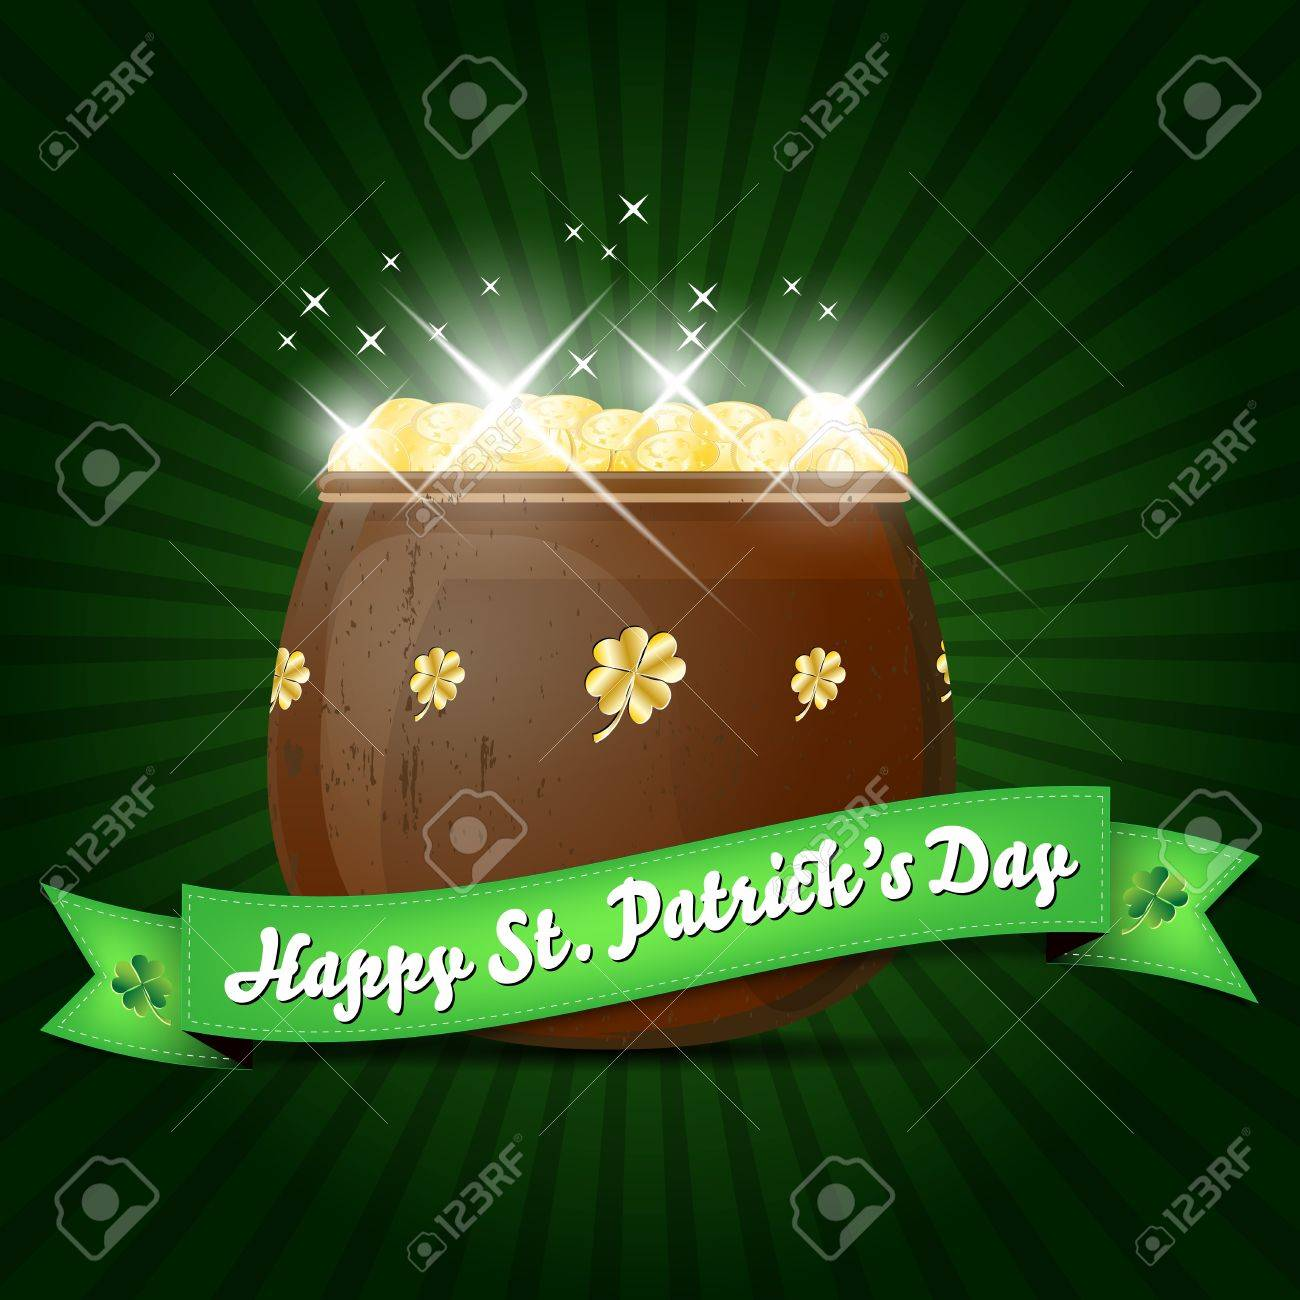 Wishes on St  Patrick s Day with pot of gold Stock Vector - 16533424